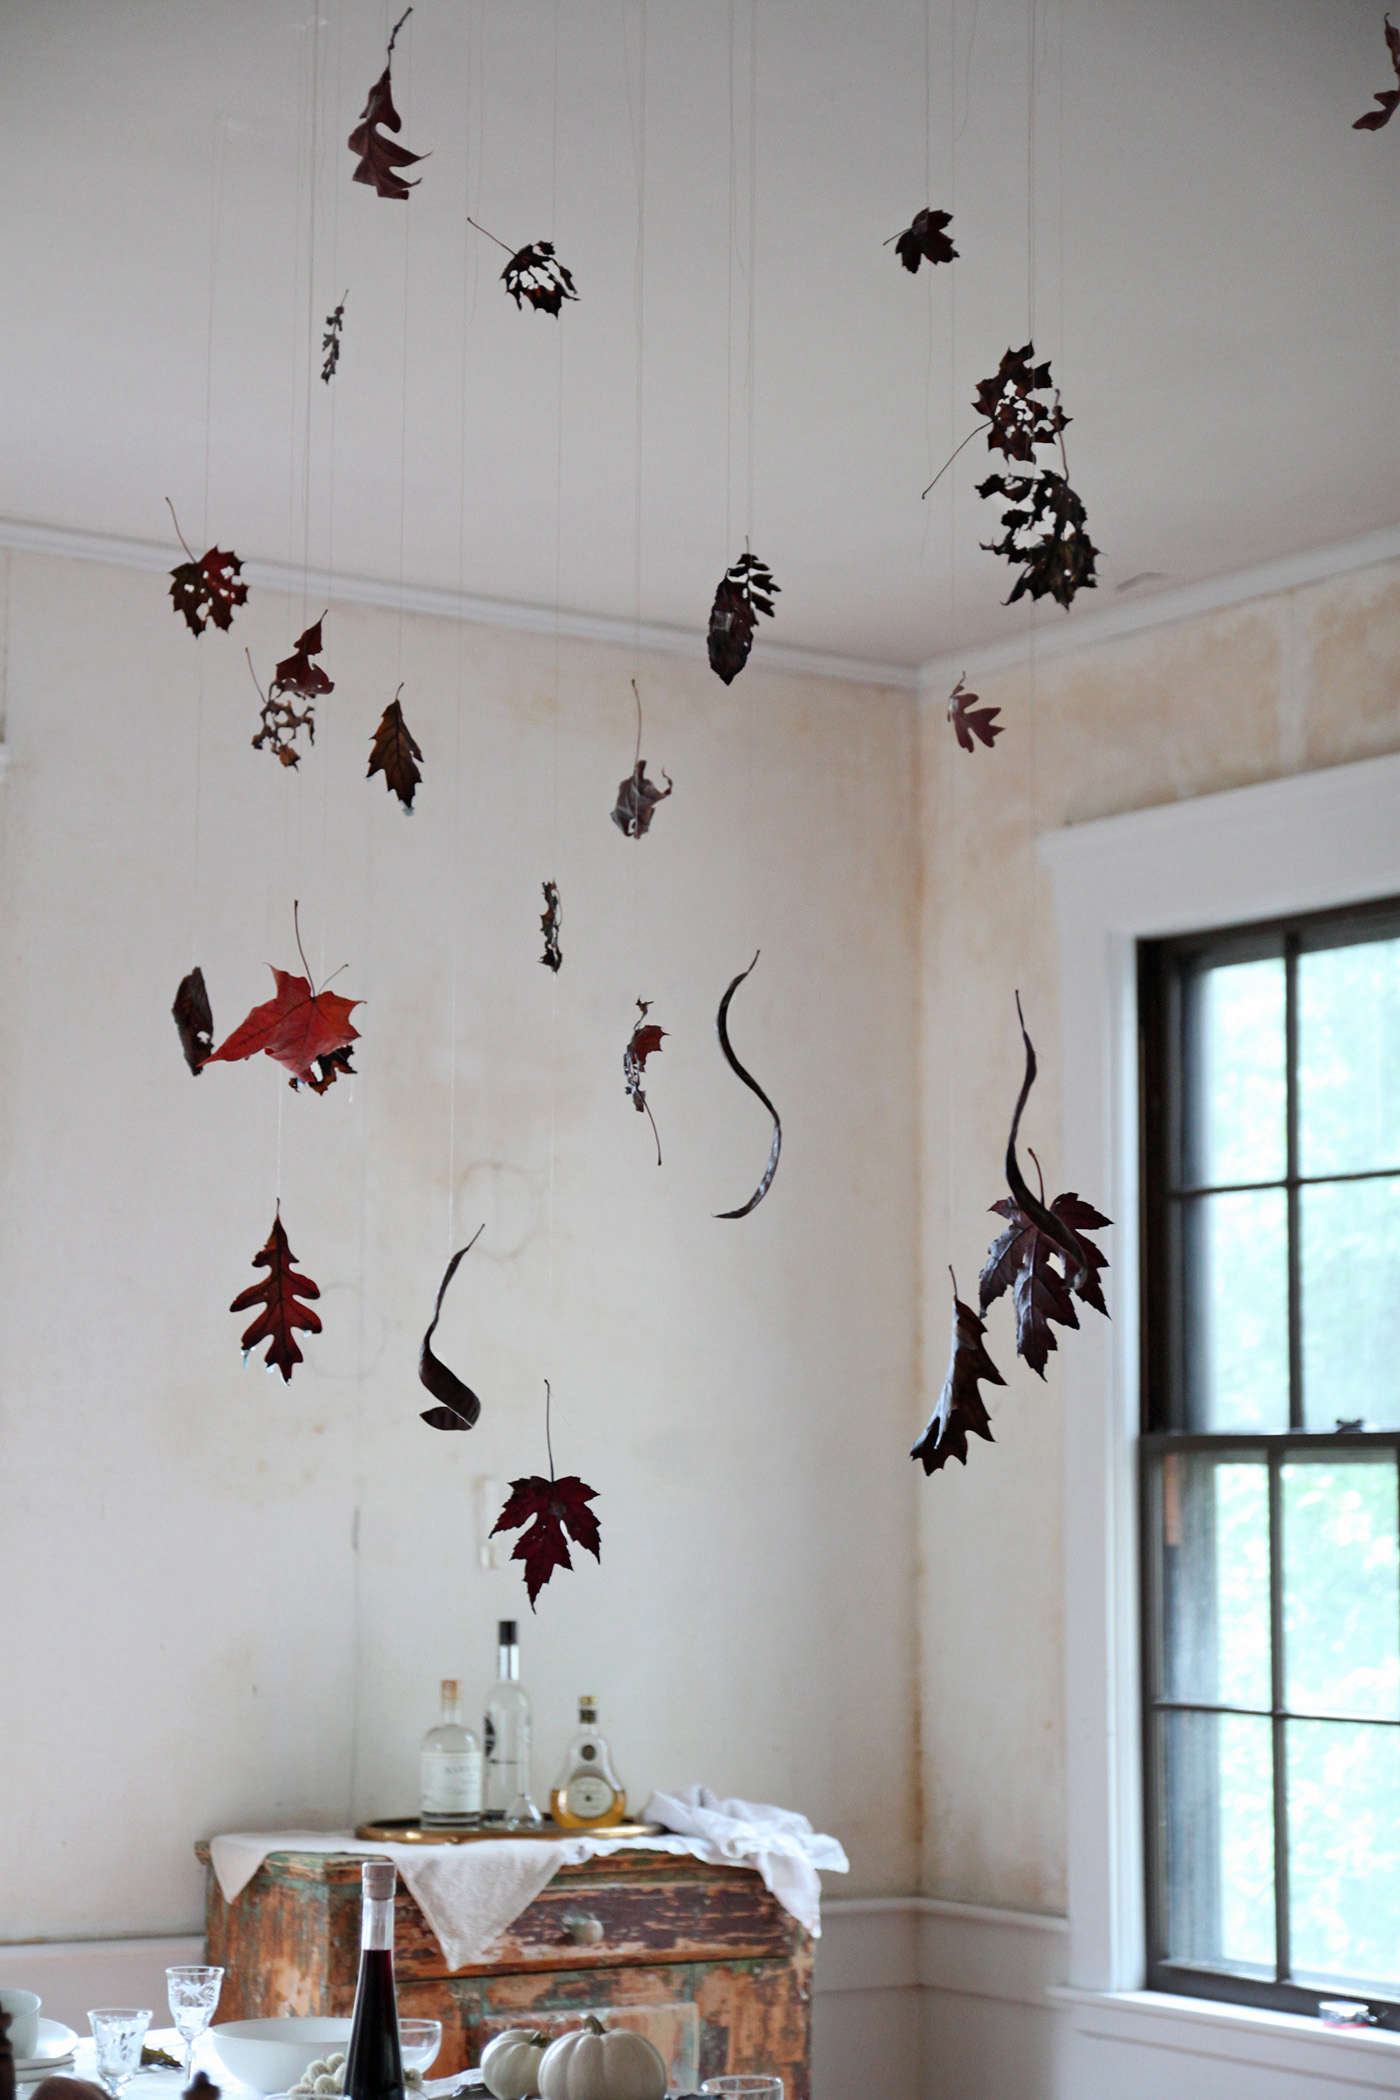 Halloween%20table%20with%20Black%20Leaves%2C%20leaf%20detail%201%2C%20by%20Justine%20Hand%20for%20Remodelista